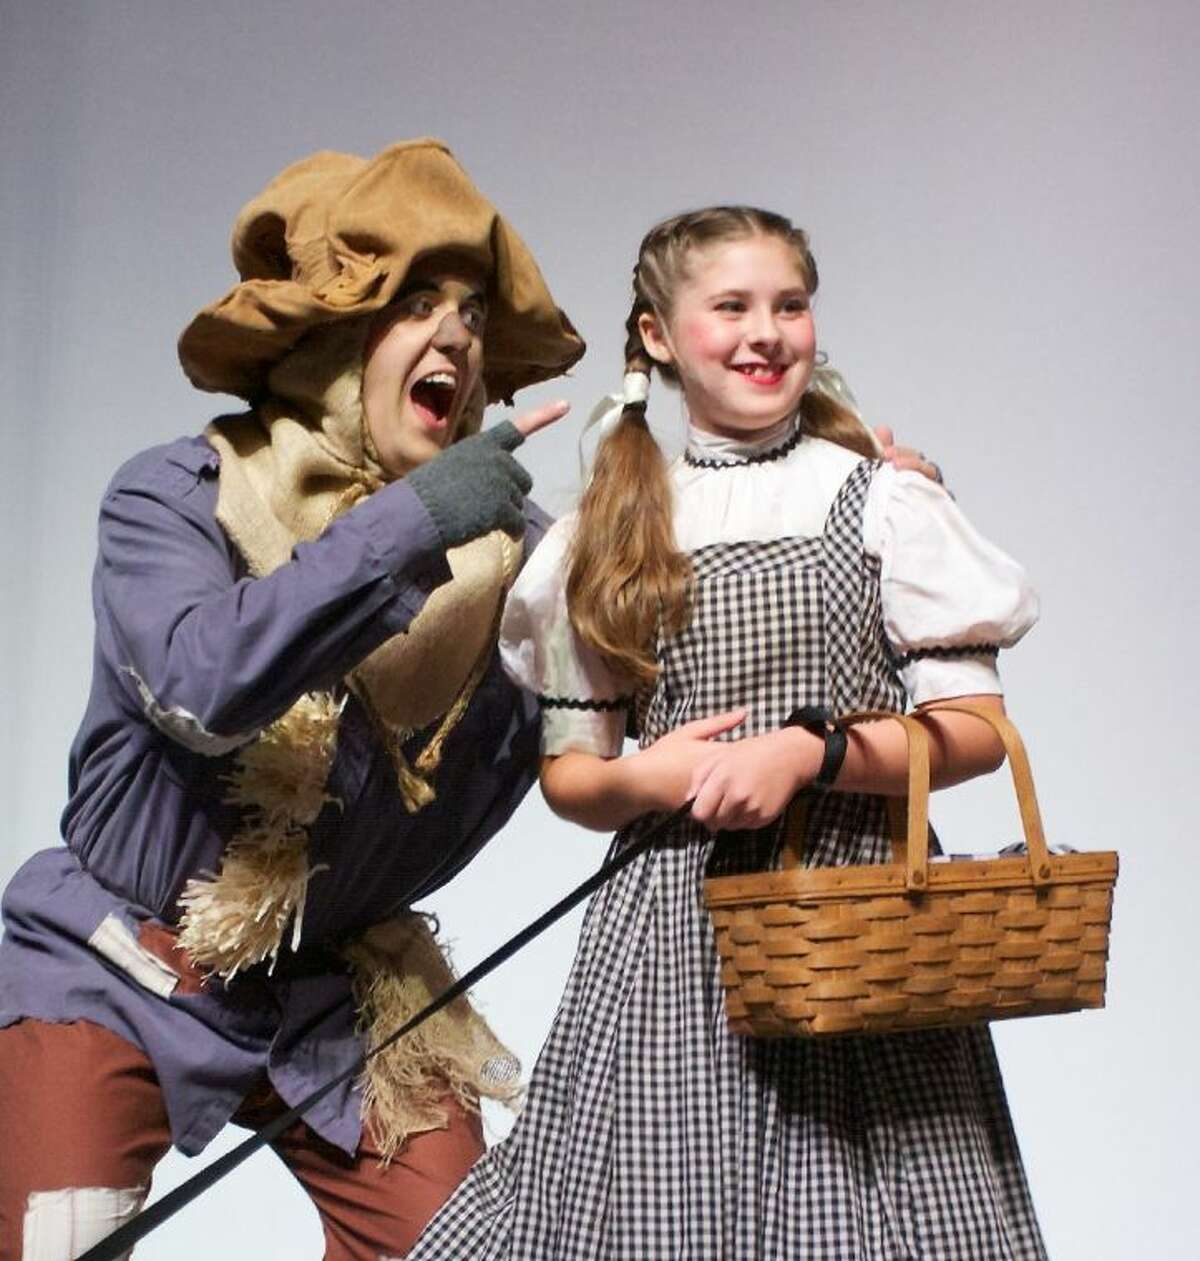 Cosette Czarnopis is Dorothy and the Scarecrow is Josh Clark.